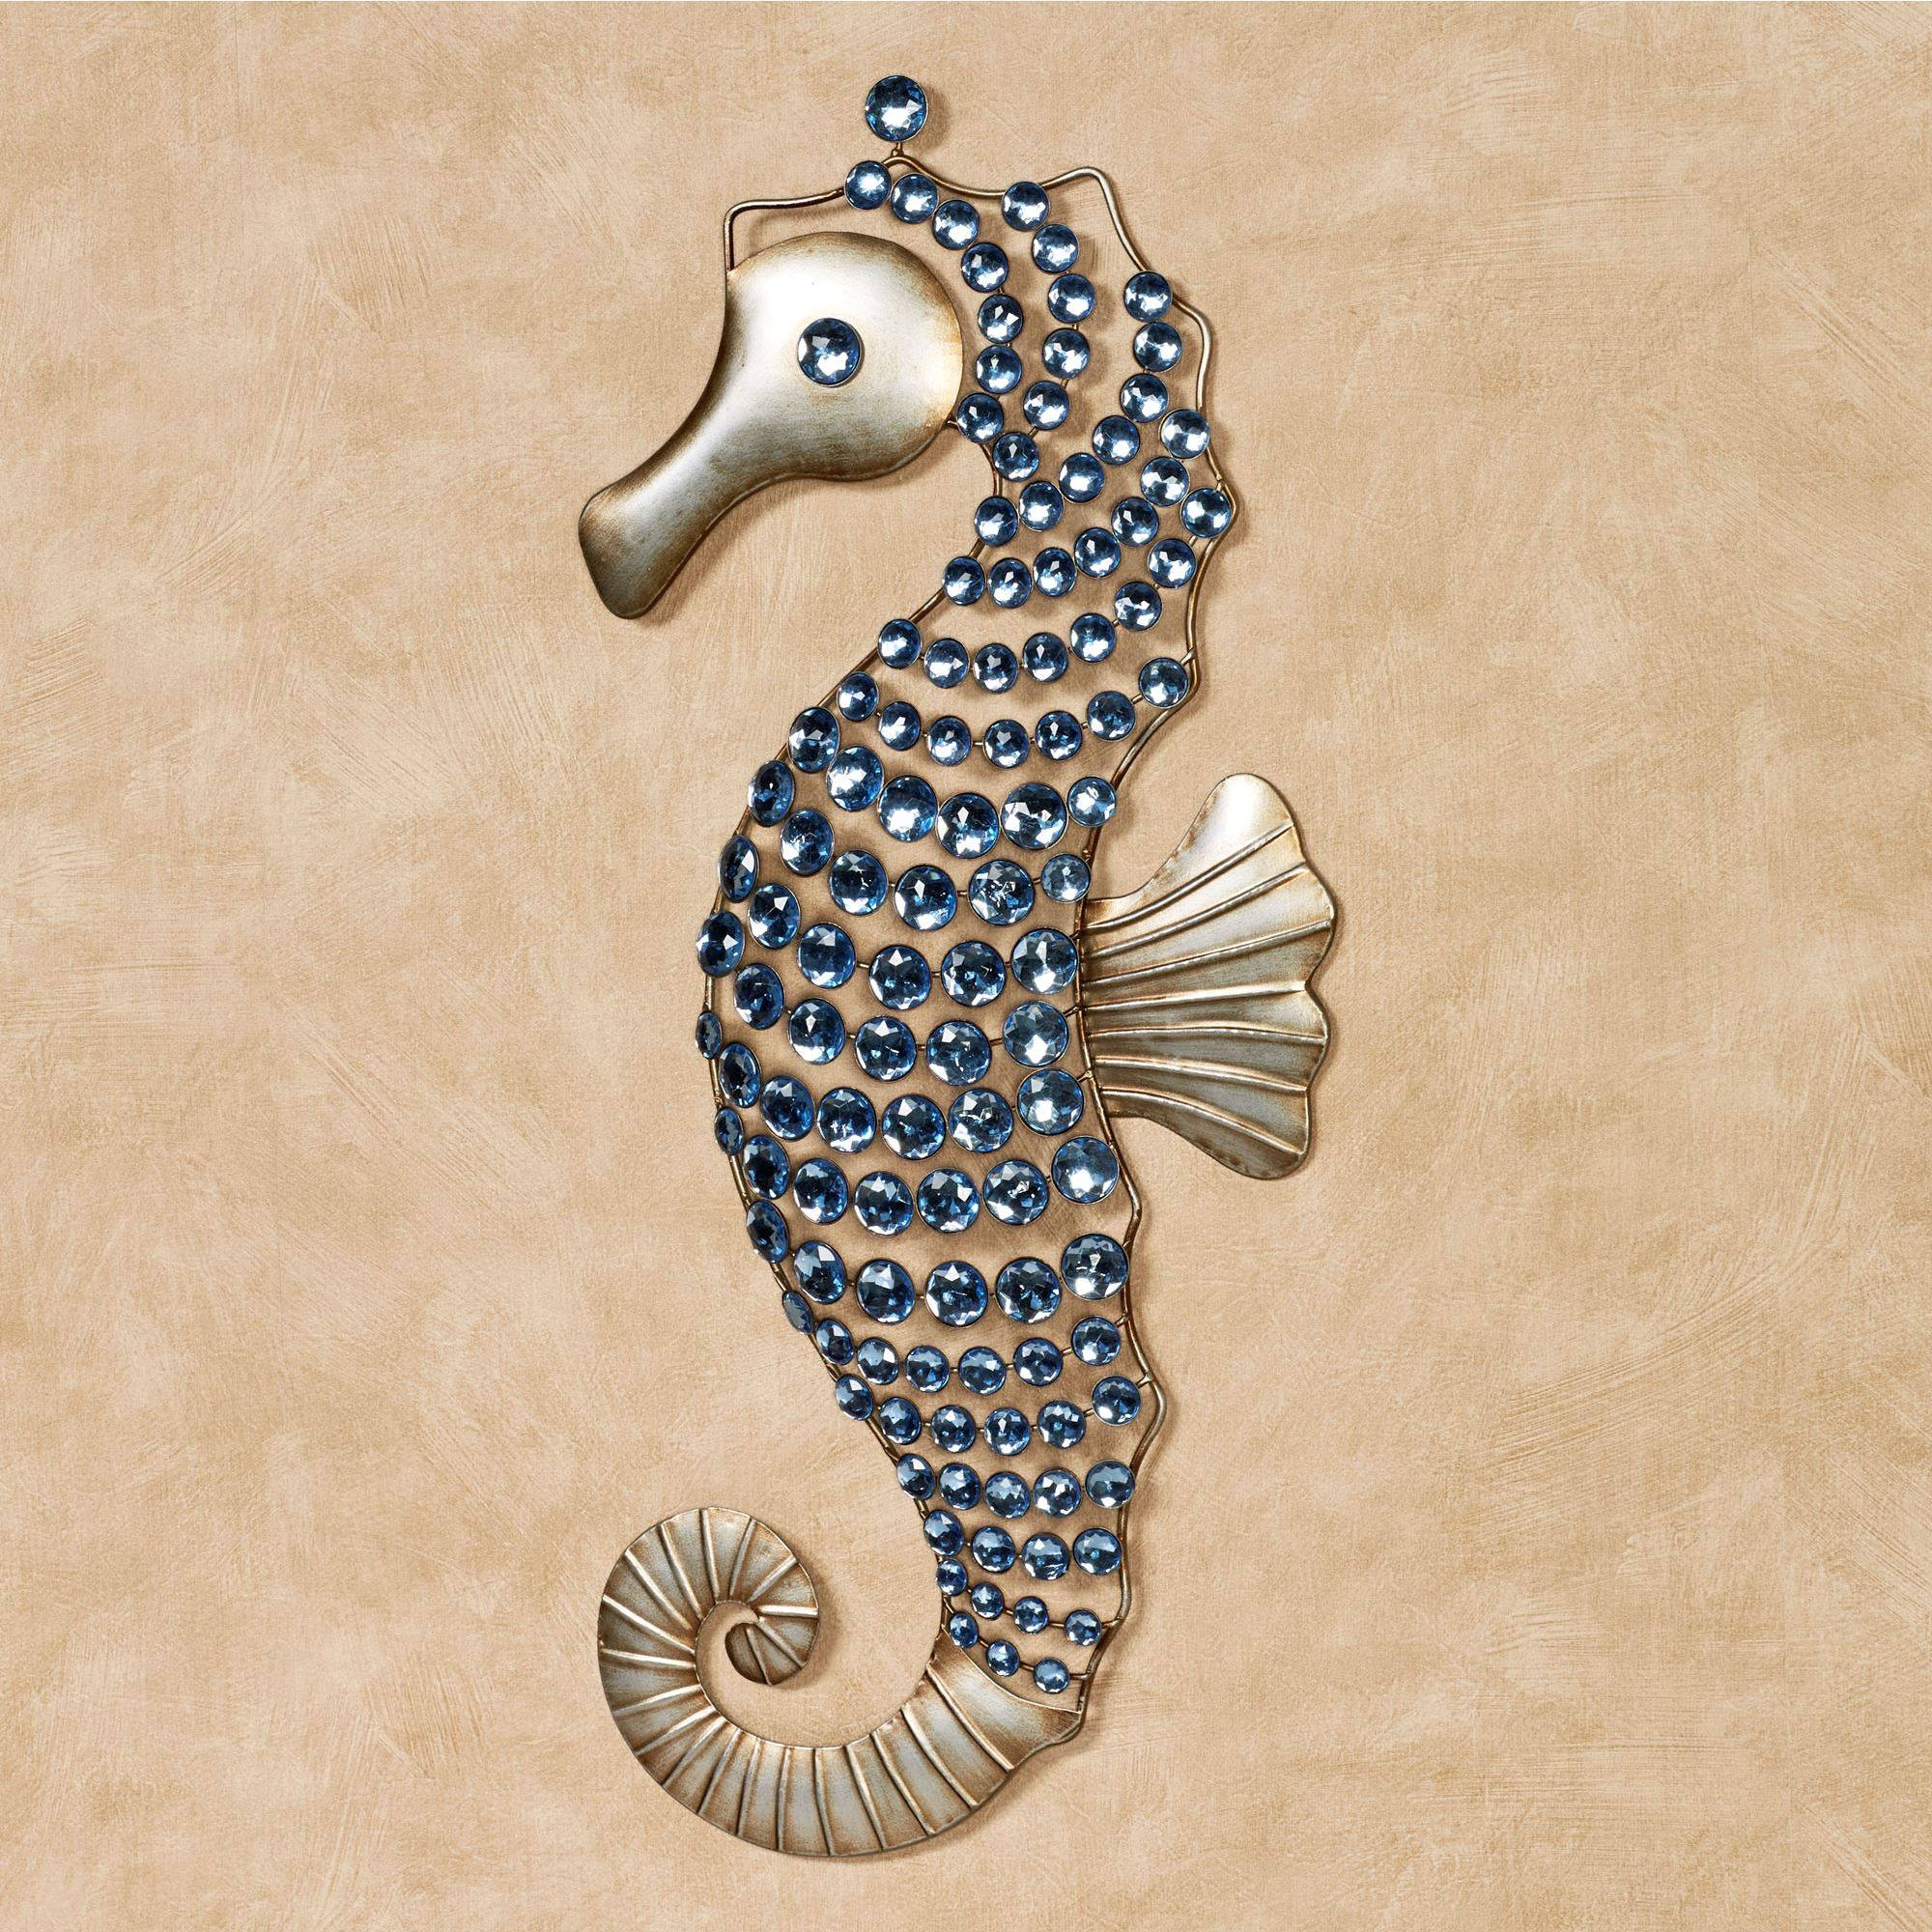 Seahorse Gems Metal Wall Art Throughout Best And Newest Metal Wall Art Animals (View 4 of 20)